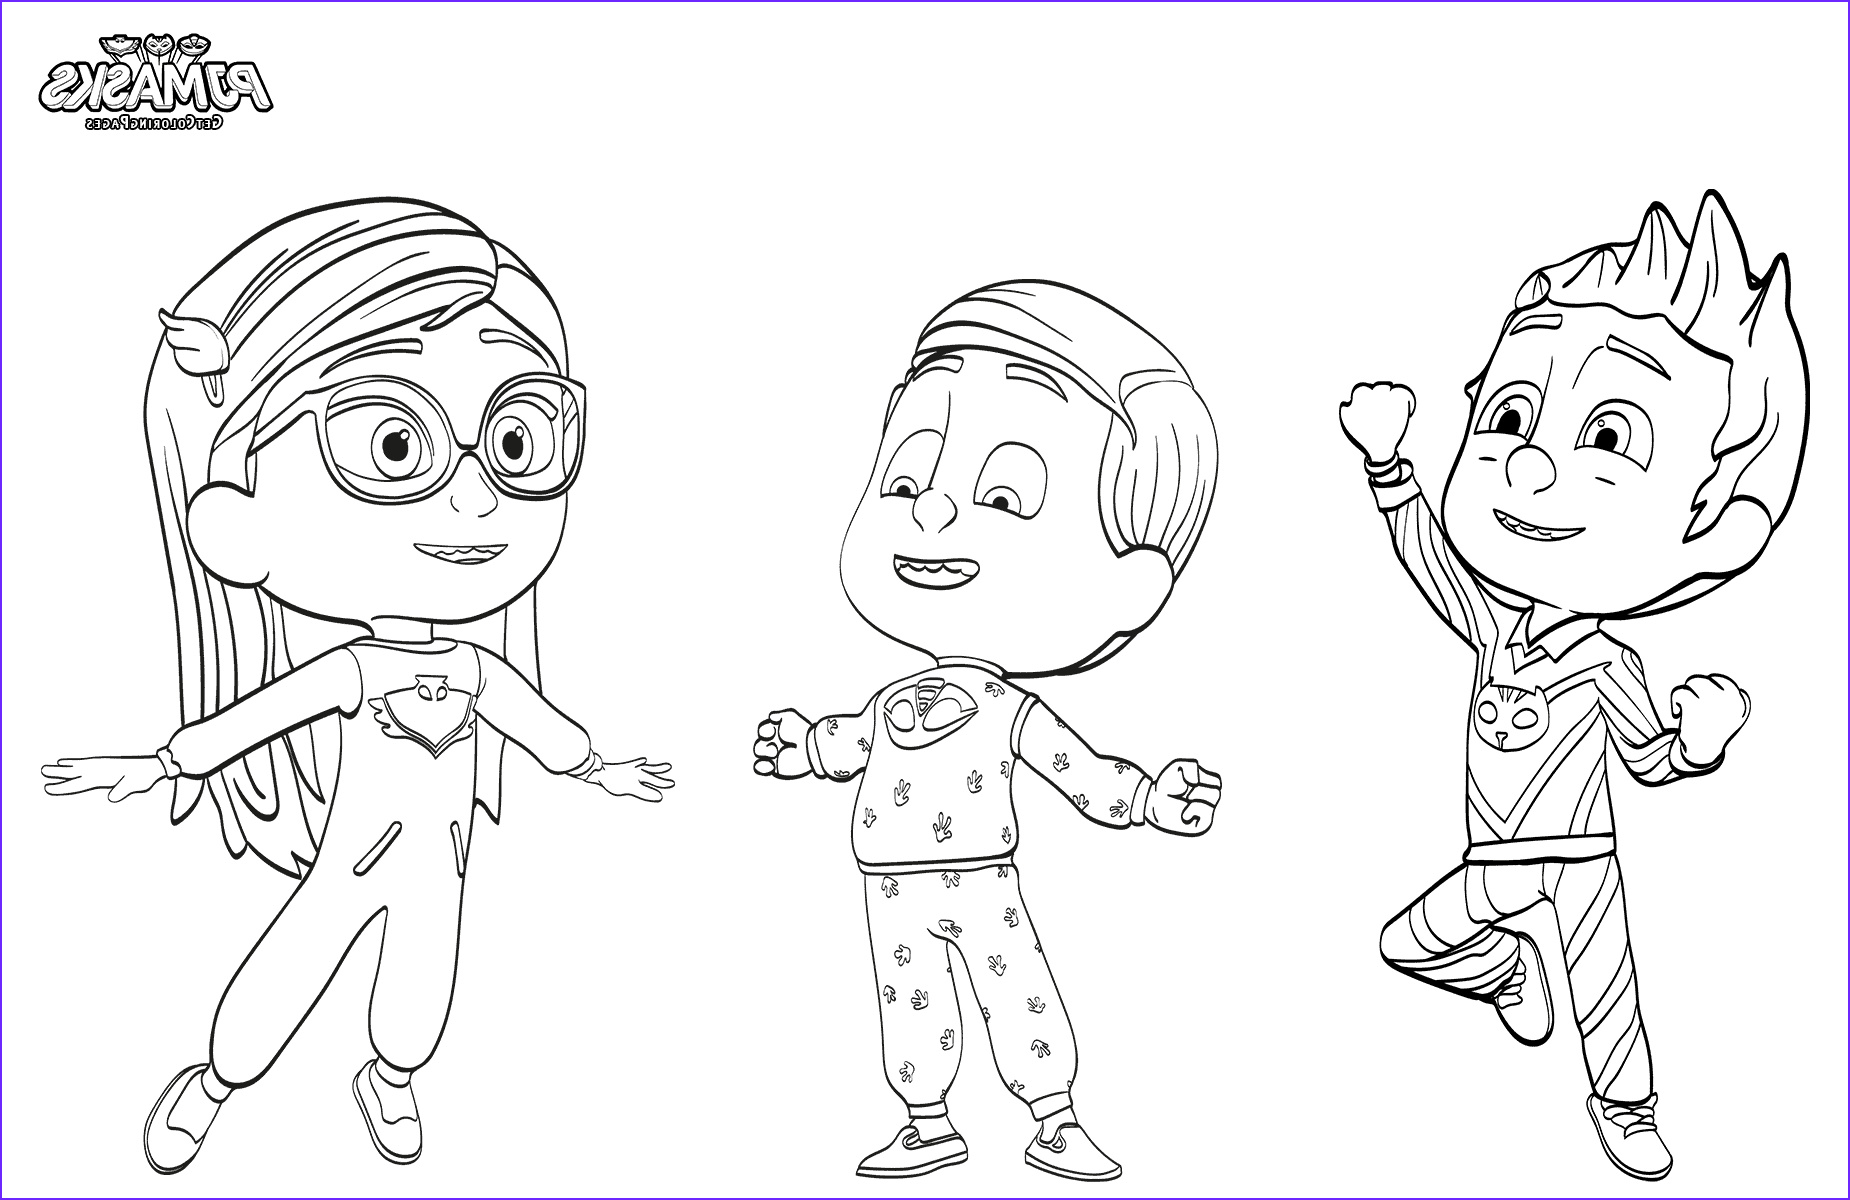 Pj Masks Coloring Cool Images top 30 Pj Masks Coloring Pages